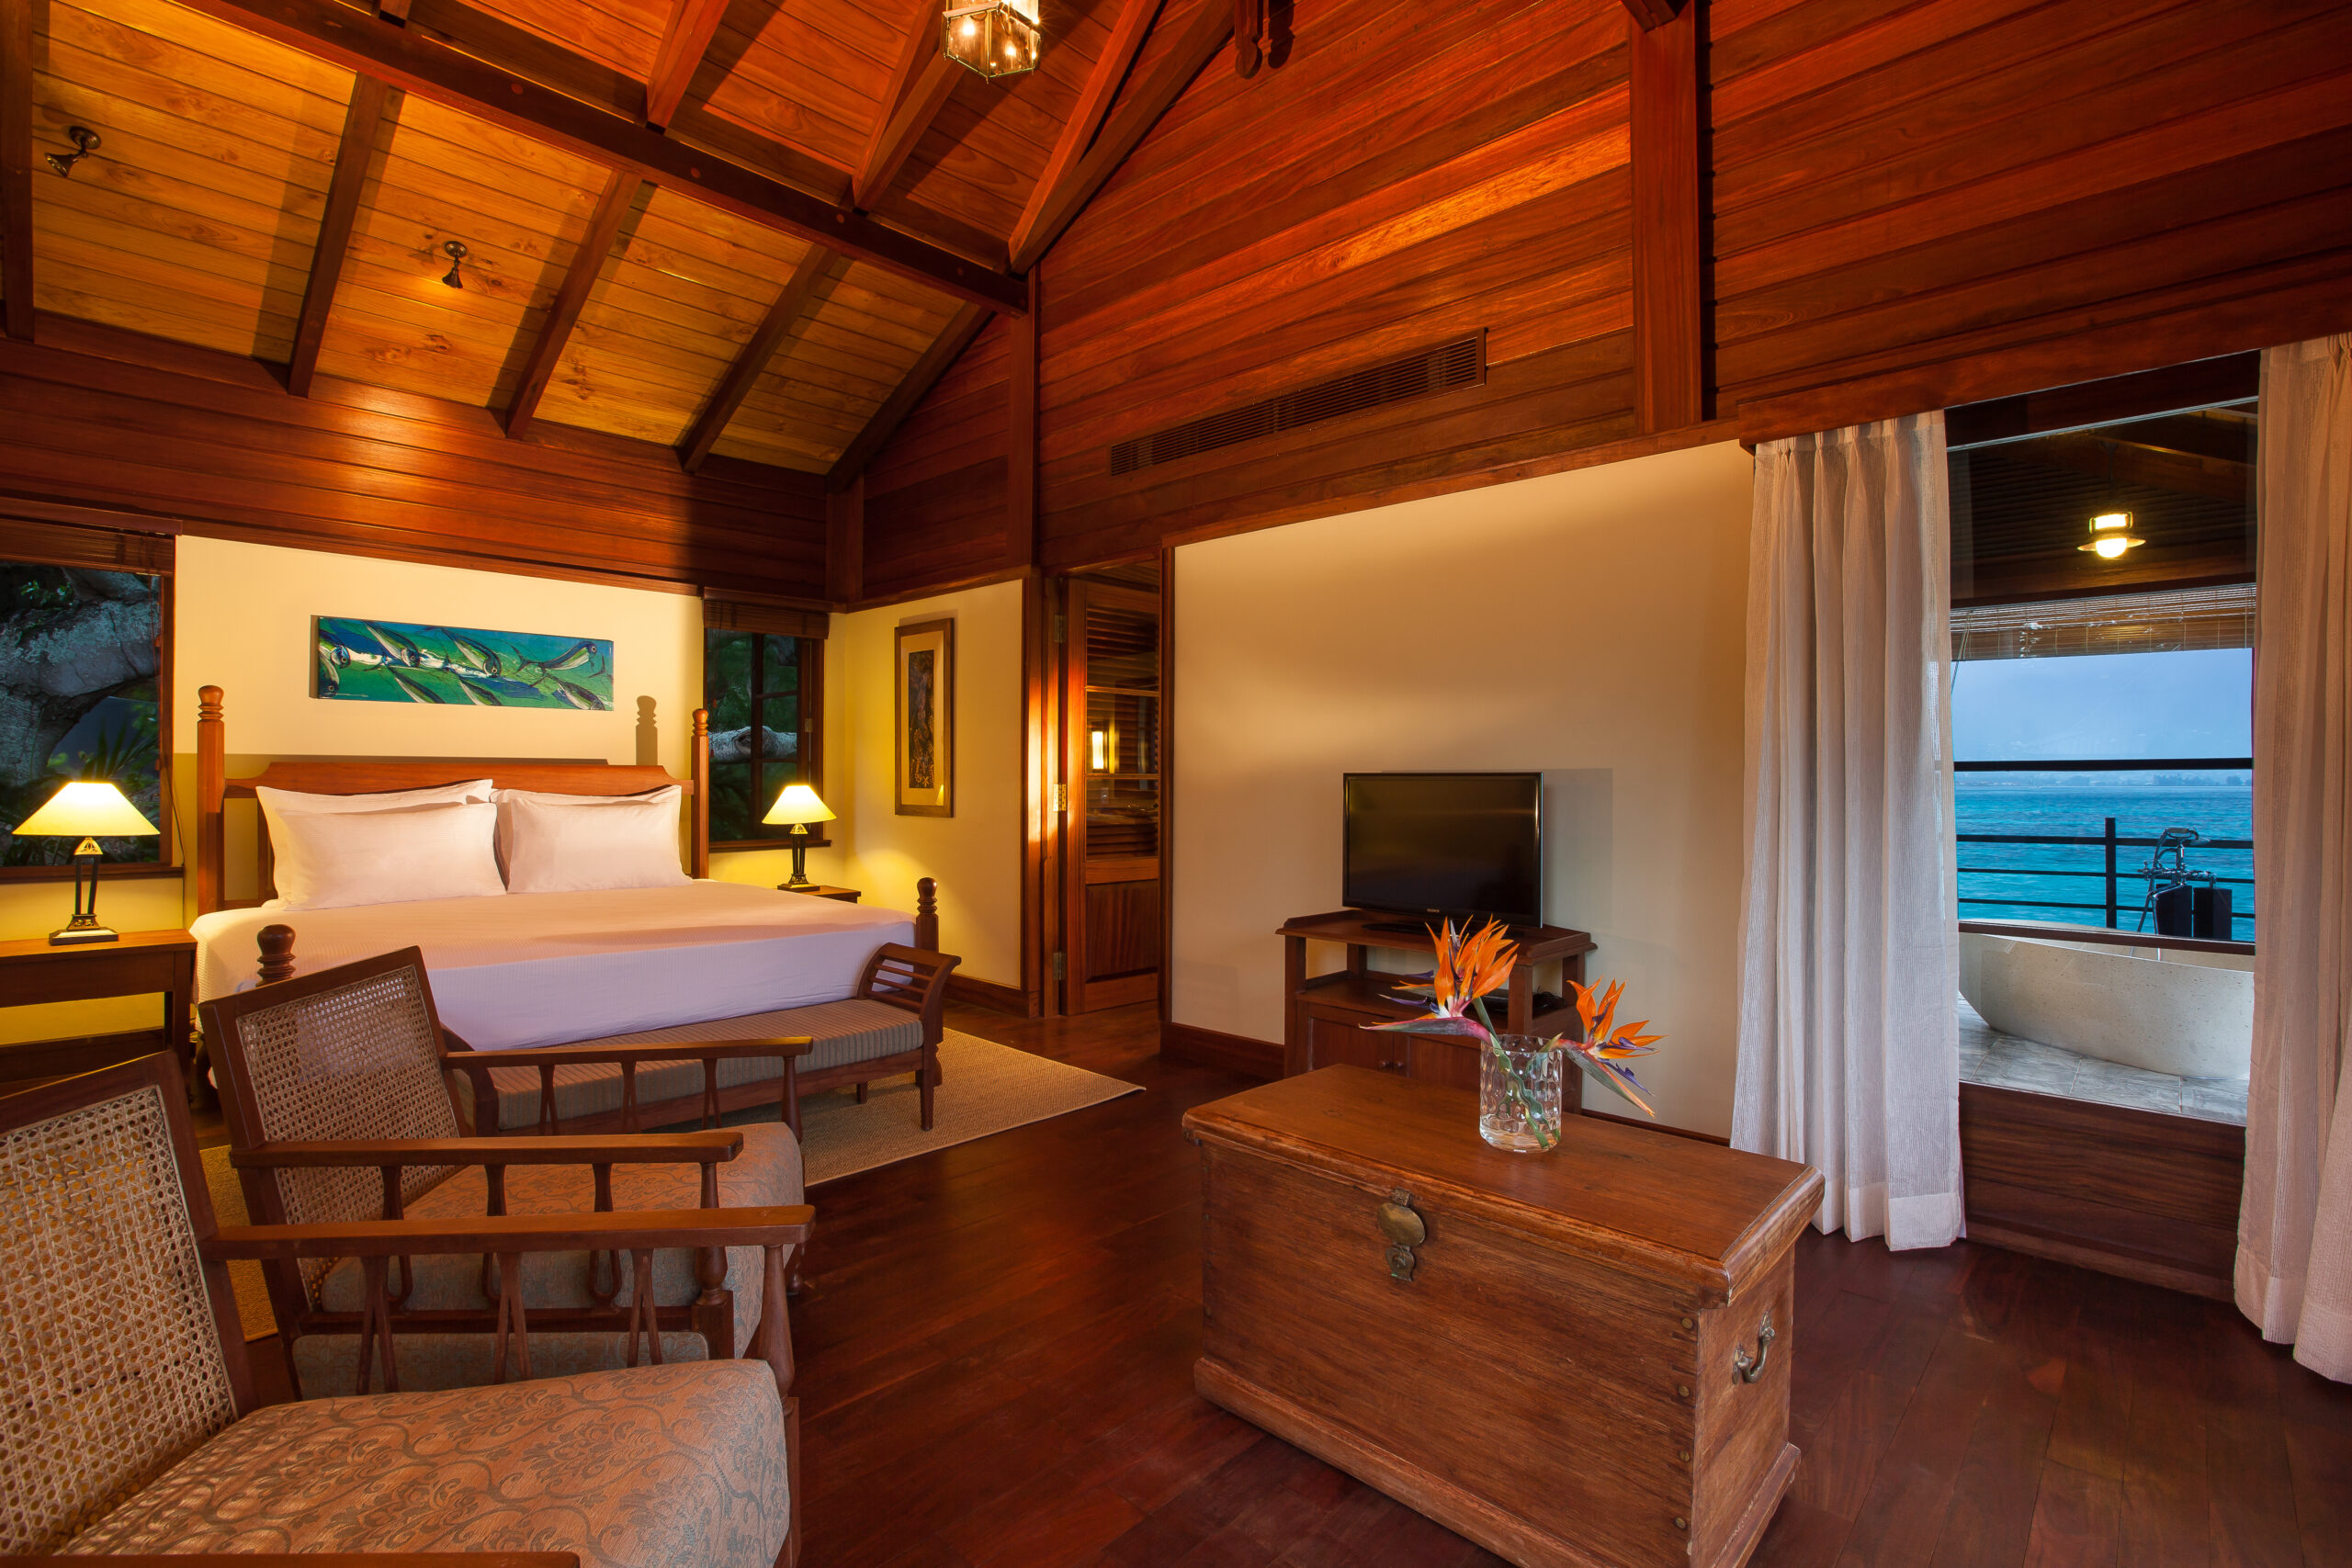 Rent Your Own Private Island From Just £368 Per Person! (And it's Officially COVID-19 Free) JA Enchanted Island Resort, Seychelles - Bedroom, Villa Flanbwayan